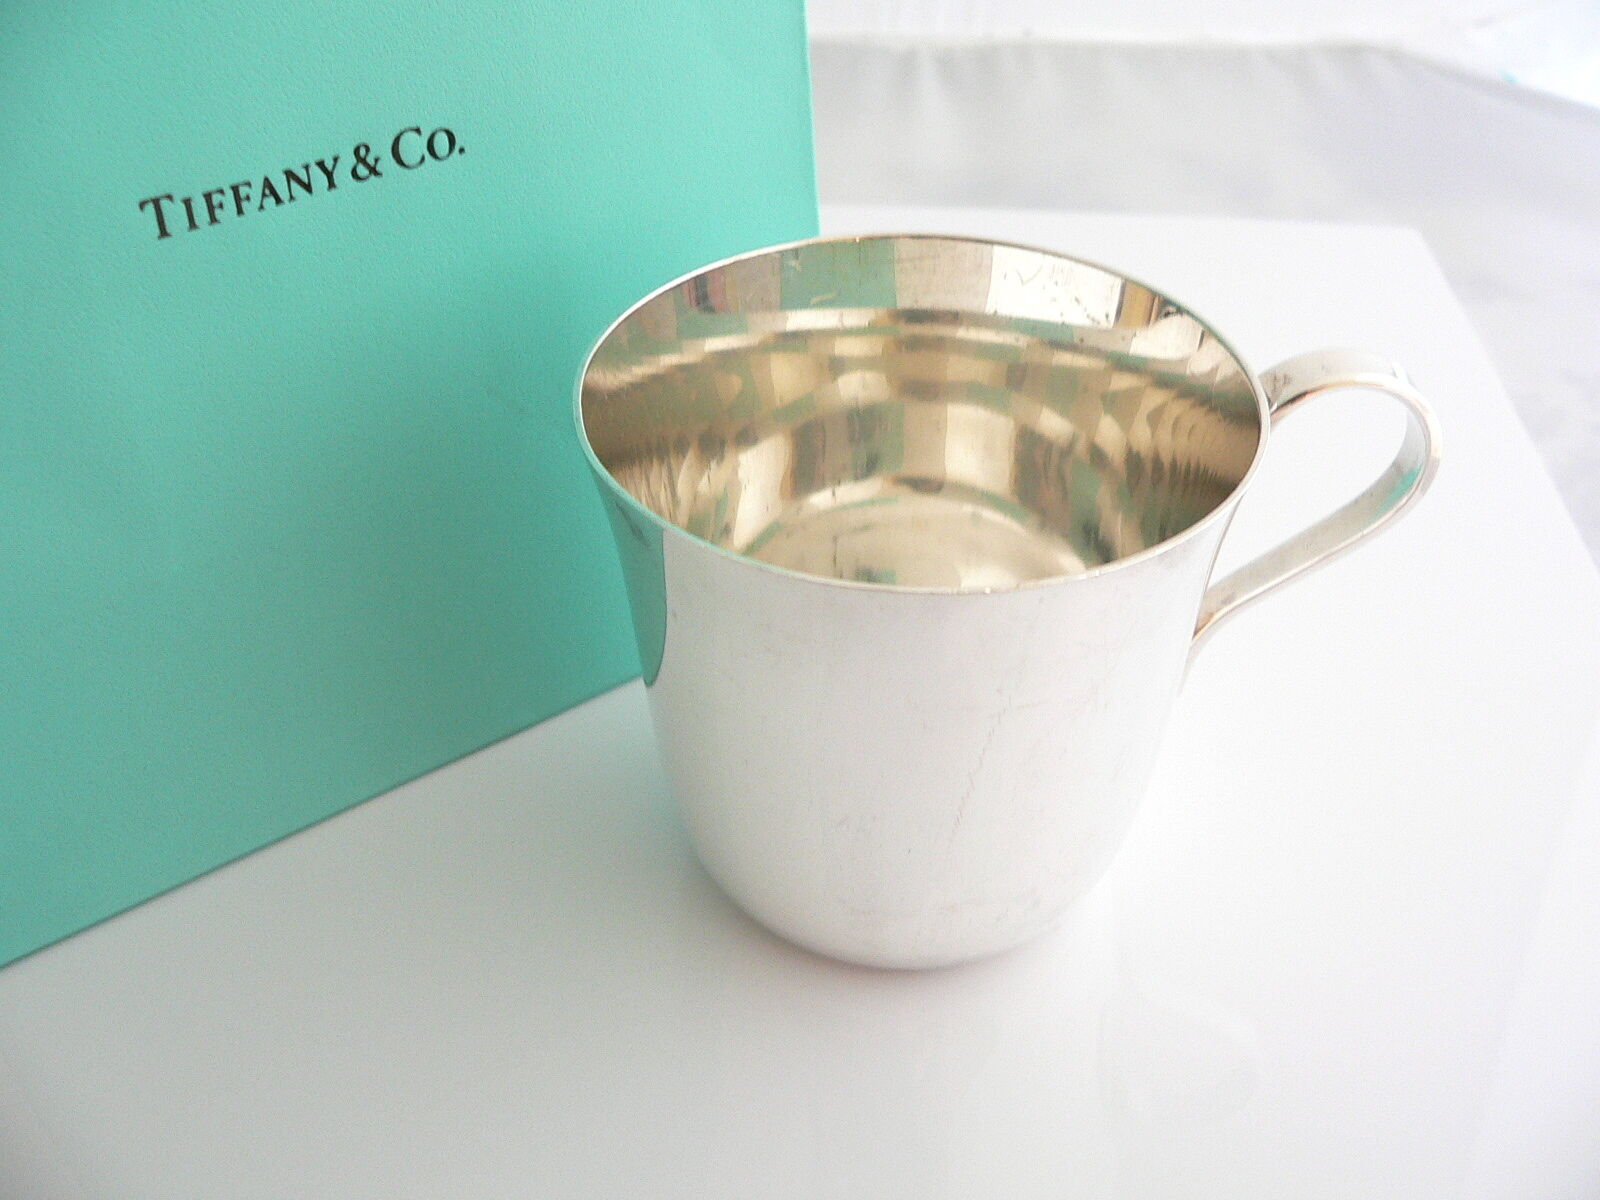 Tiffany & Co Silver Baby Cup Cute Rare Vintage Antique Hierloom Gift Bag